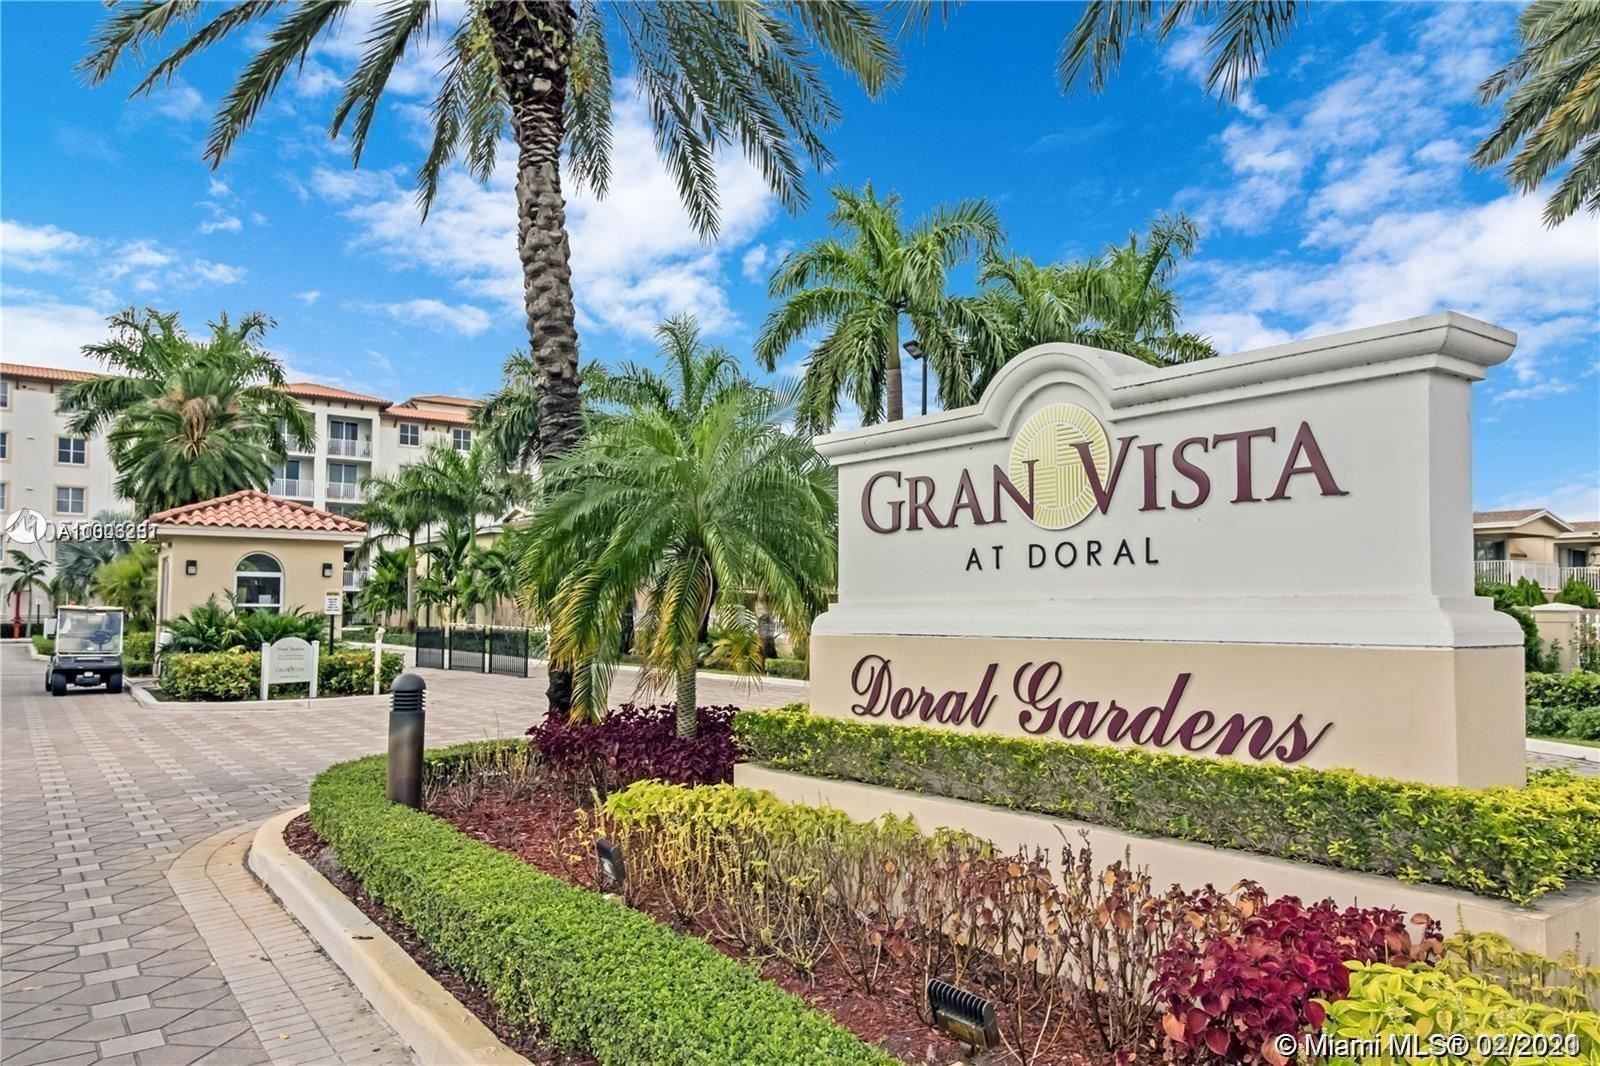 4330 NW 79th Ave #1C, Doral, FL 33166 - #: A11003281